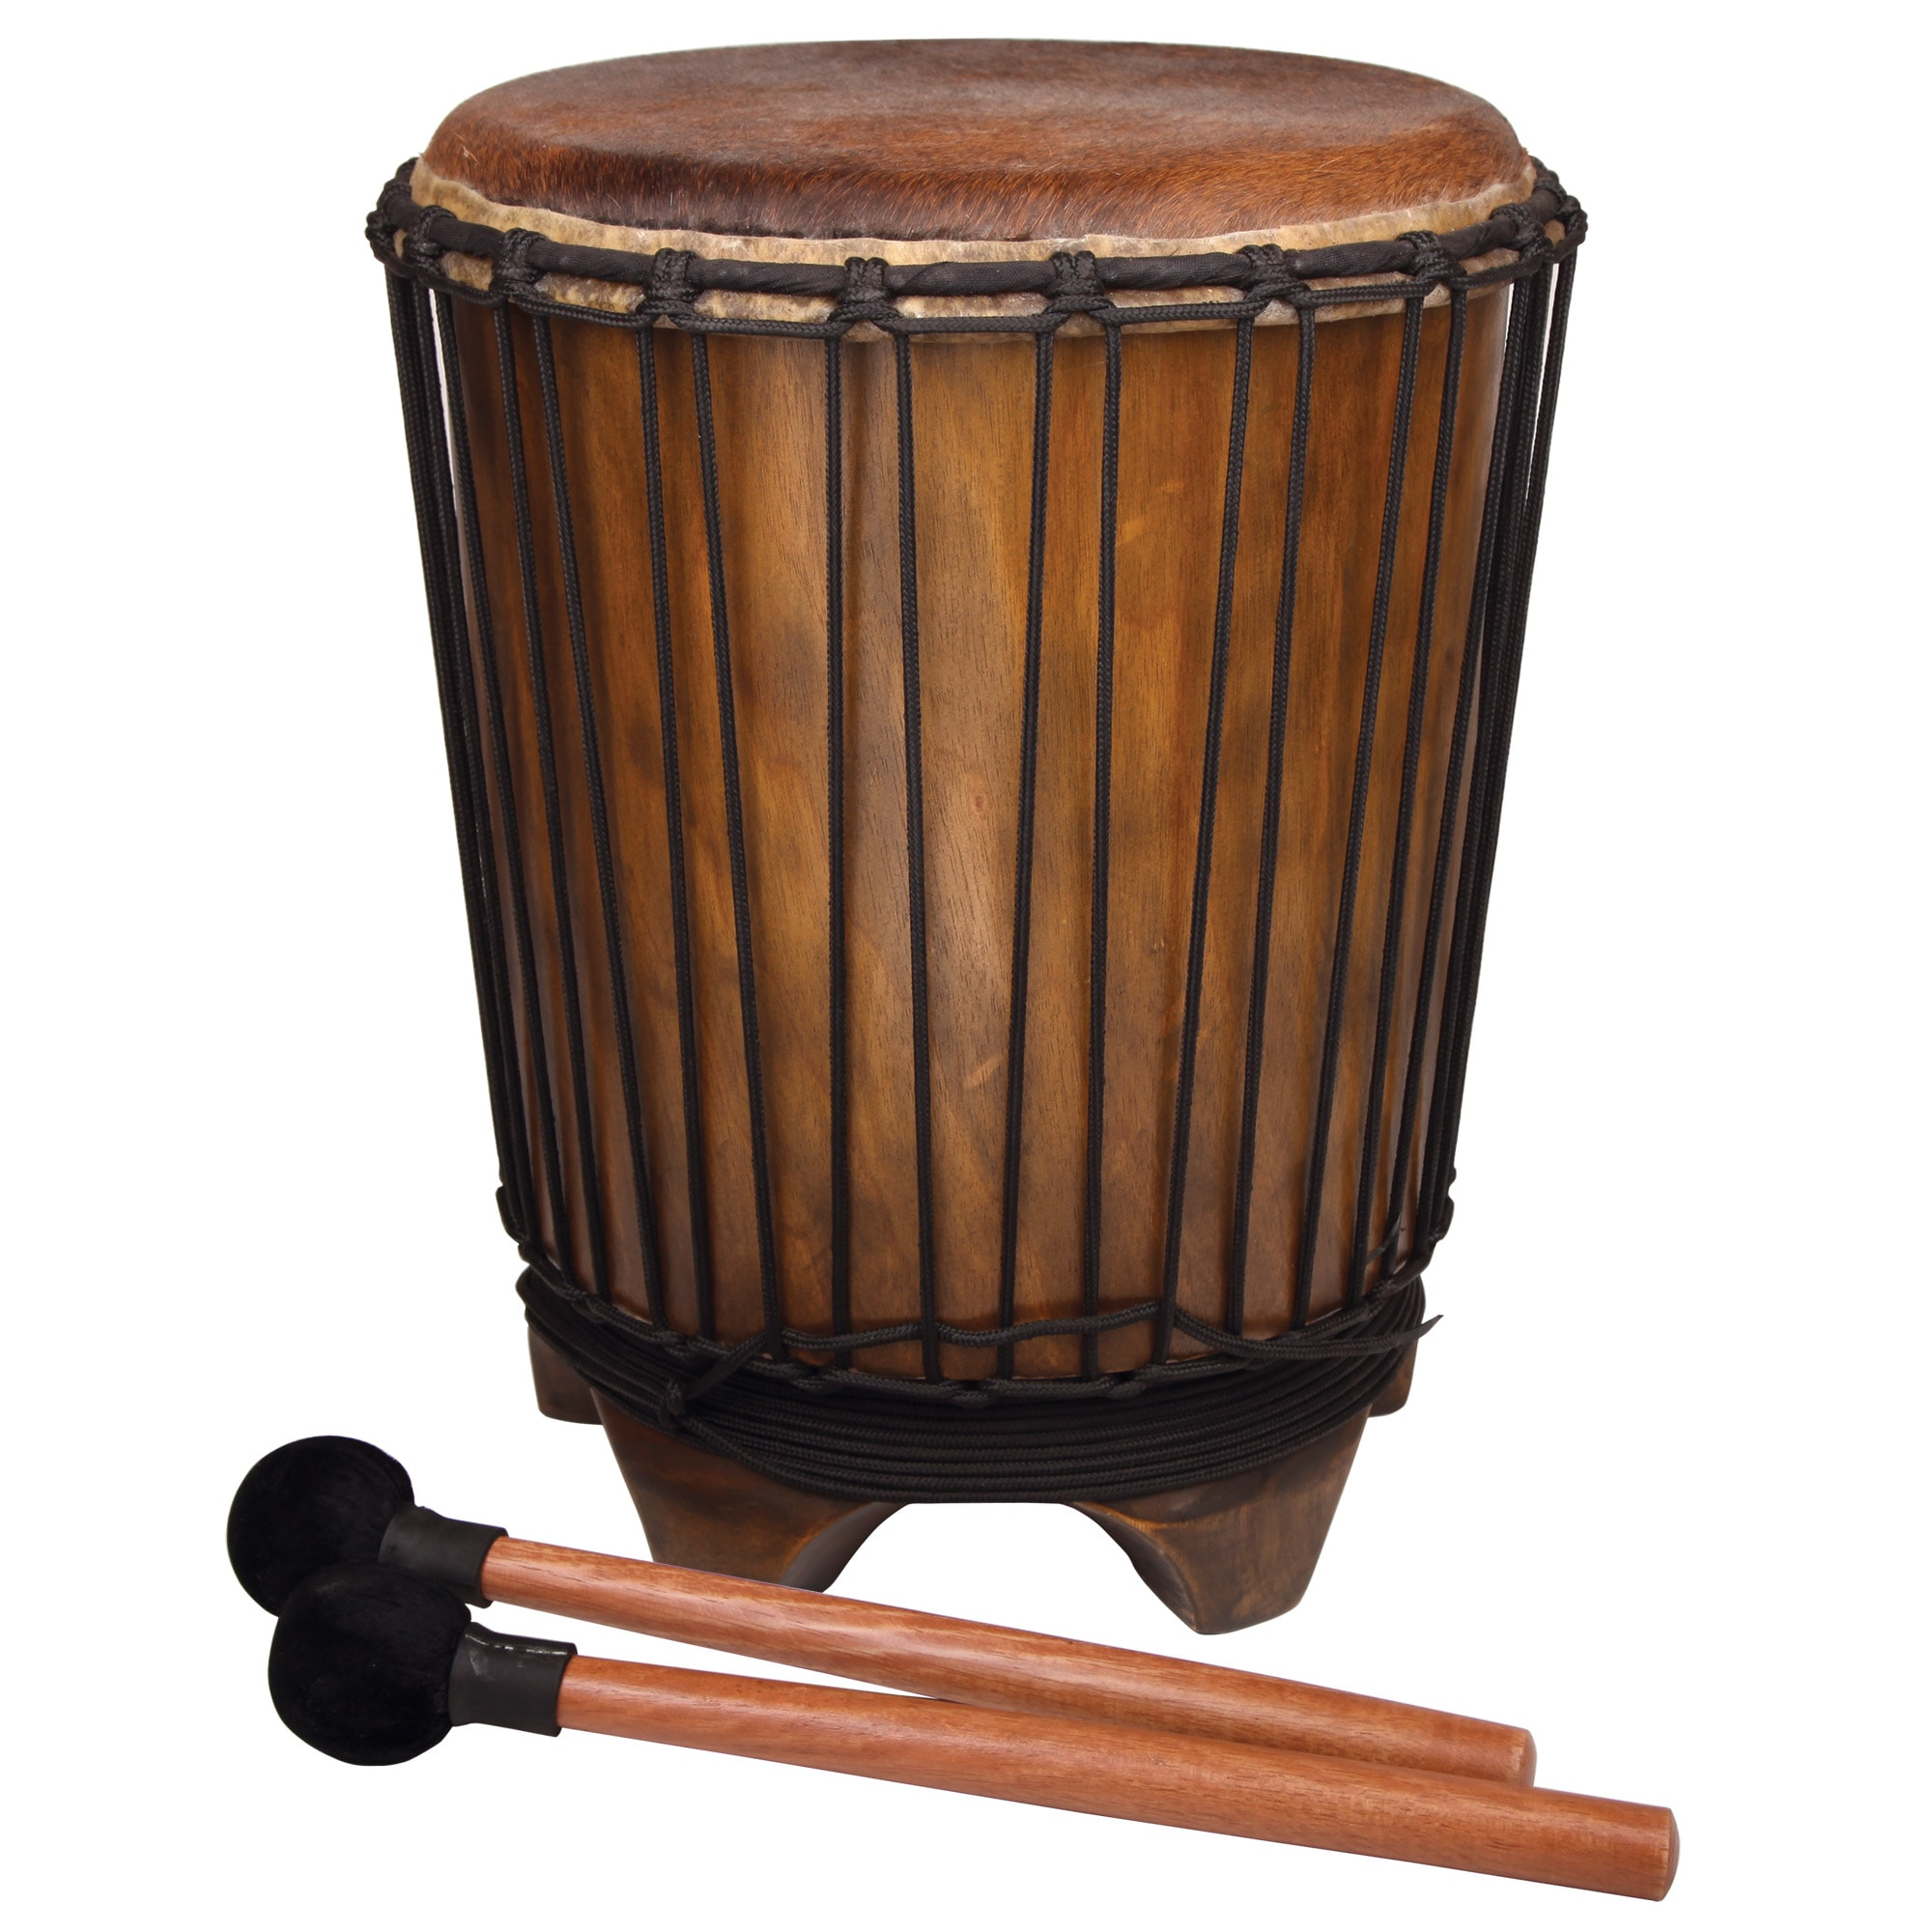 African Drum Coffee Table Handmade Mahogany Drum Table Indonesia Free Shipping Today